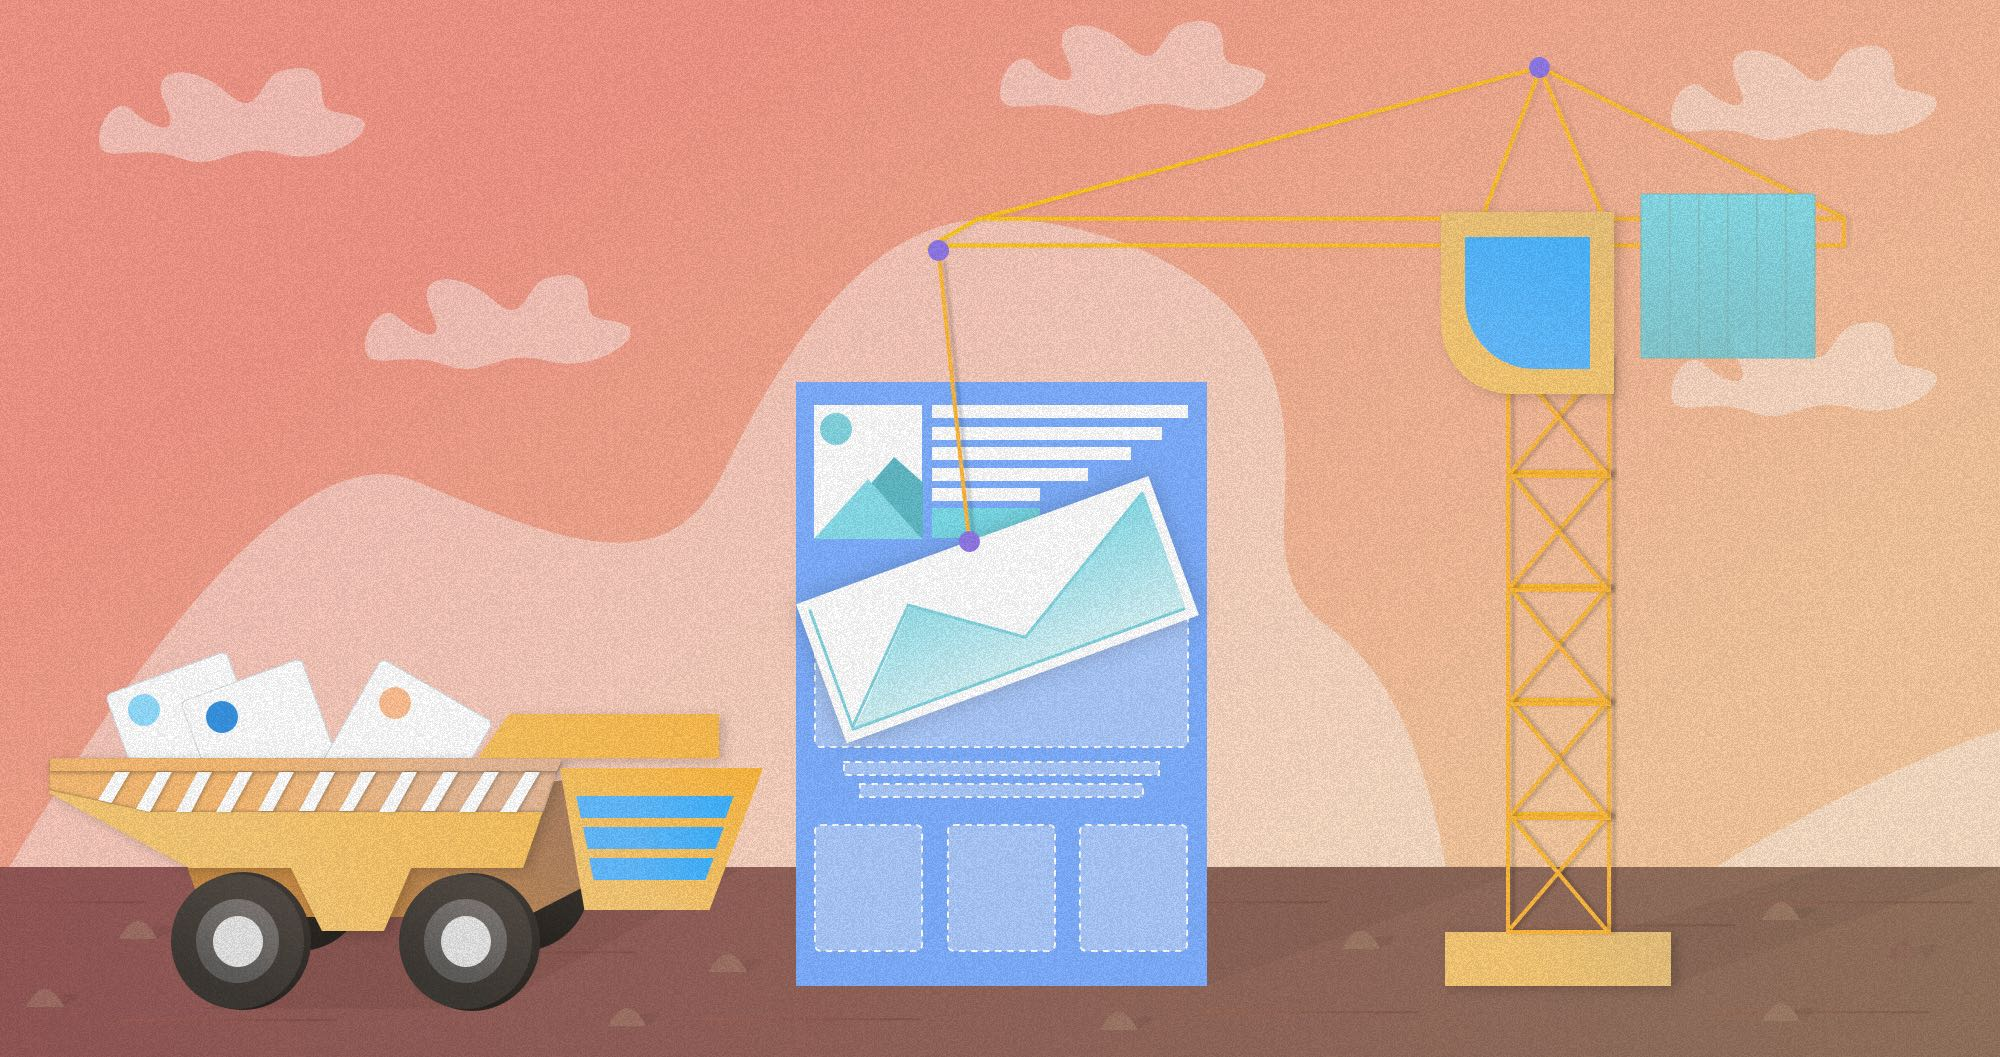 The benefits of using email marketing are numerous - emails are incredibly fast, they allow for segmenting and customizing the message for different groups of customers, are less obtrusive than cold phone calls and are very cheap, perfect for even tiniest businesses with a very tight budget. Learn more from our article.